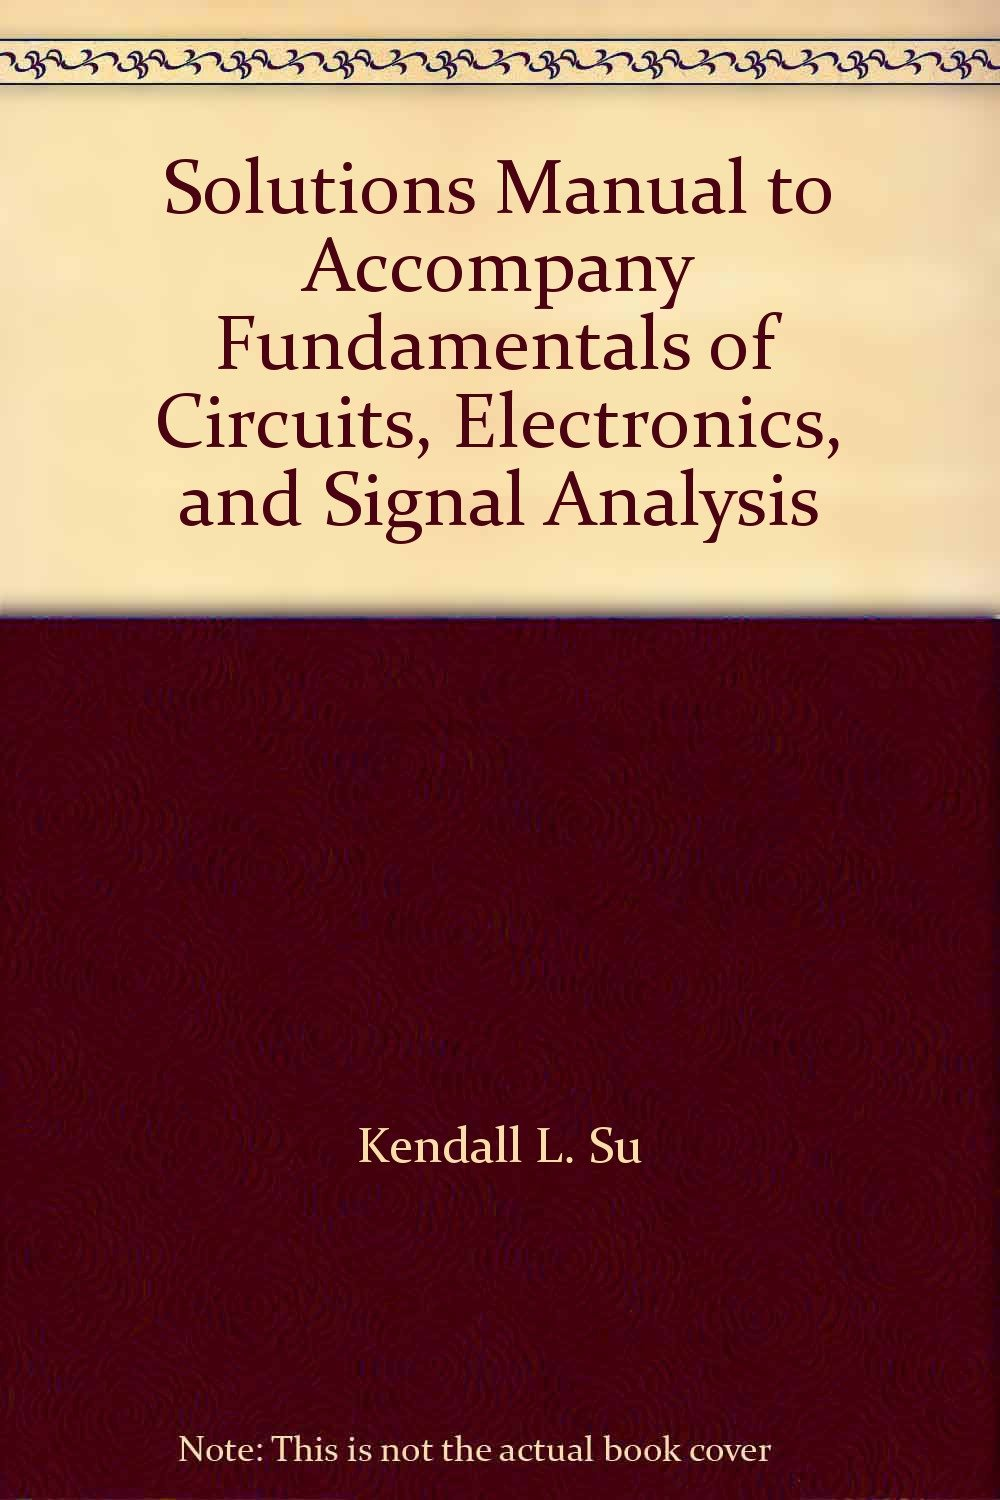 Solutions Manual to Accompany Fundamentals of Circuits, Electronics, and  Signal Analysis: Kendall L. Su: 9780881332209: Amazon.com: Books